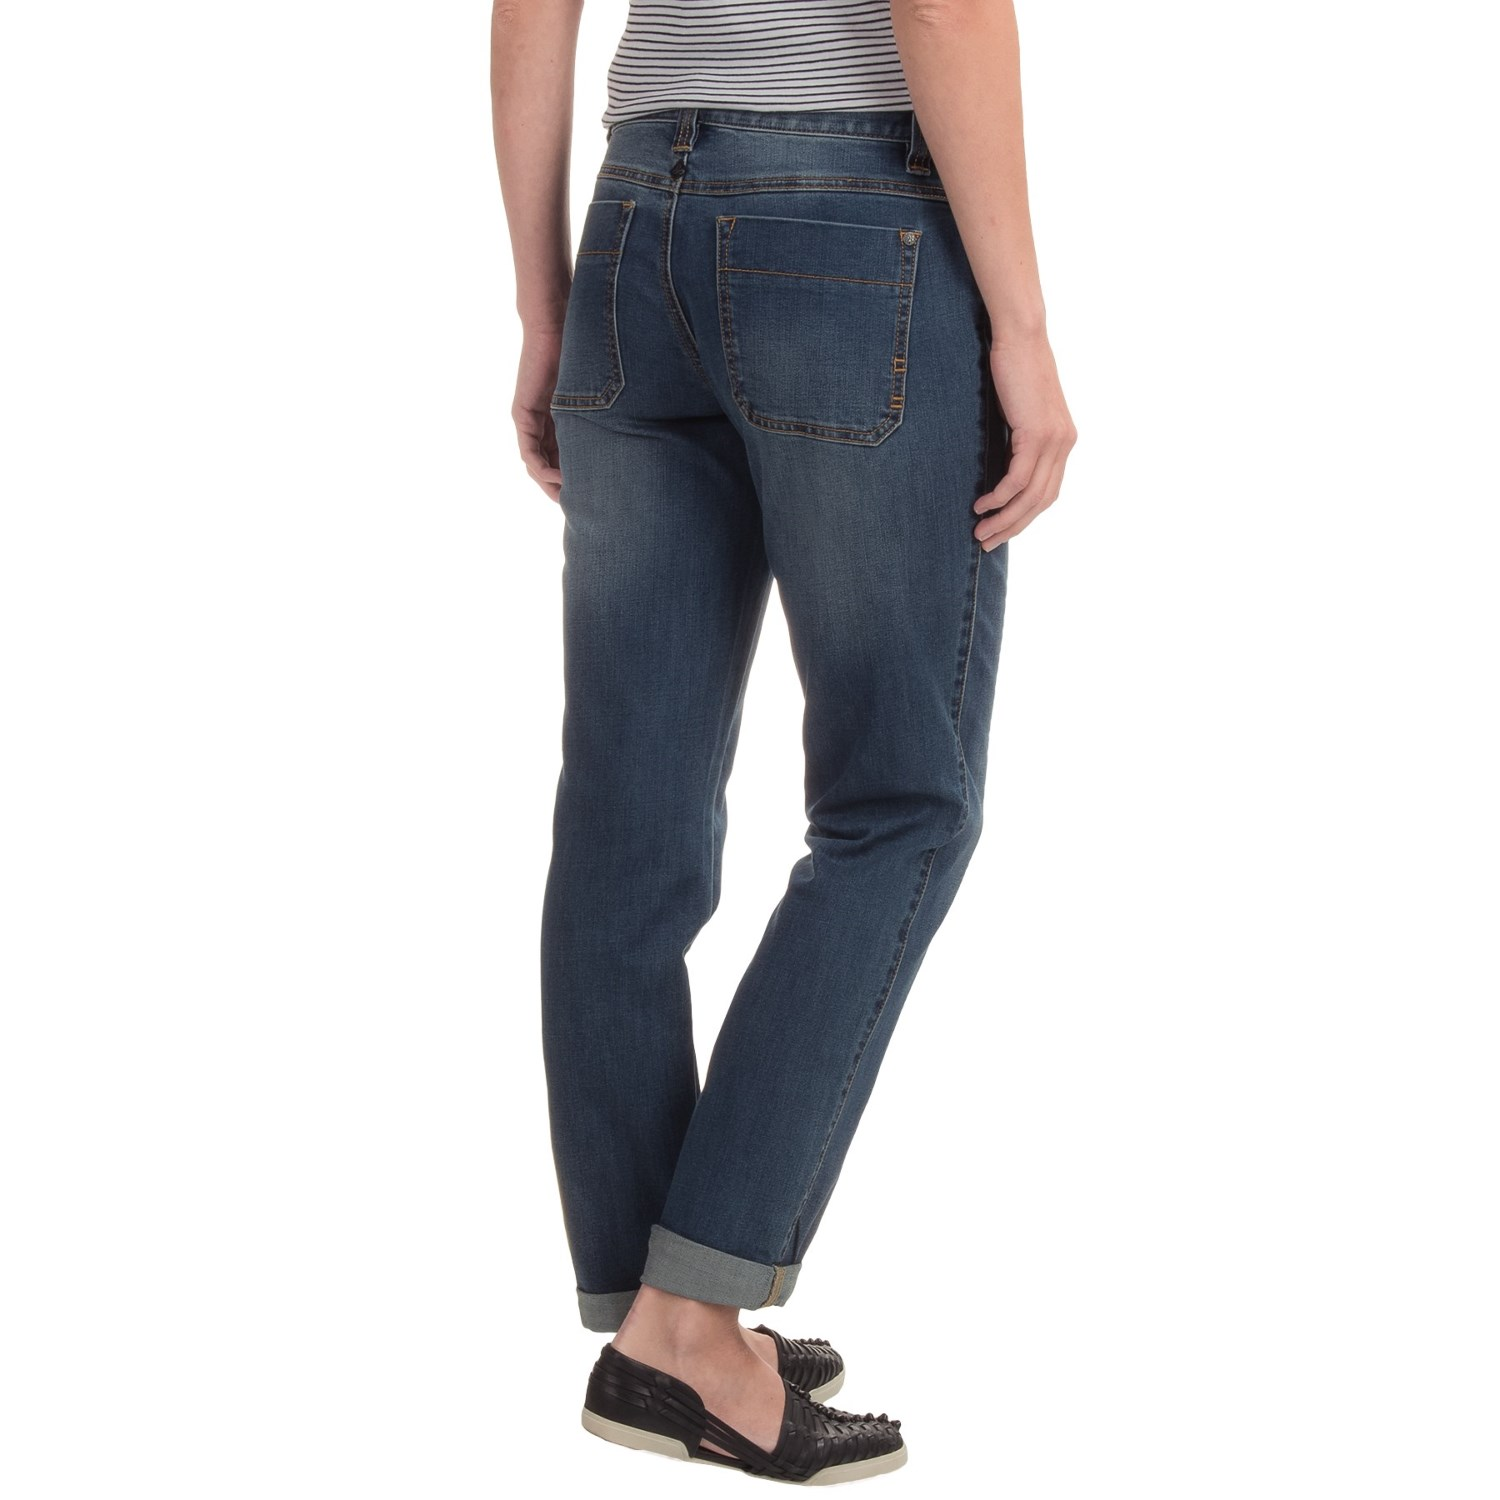 prAna Honour Relaxed Fit Jeans (For Women) - Save 55%